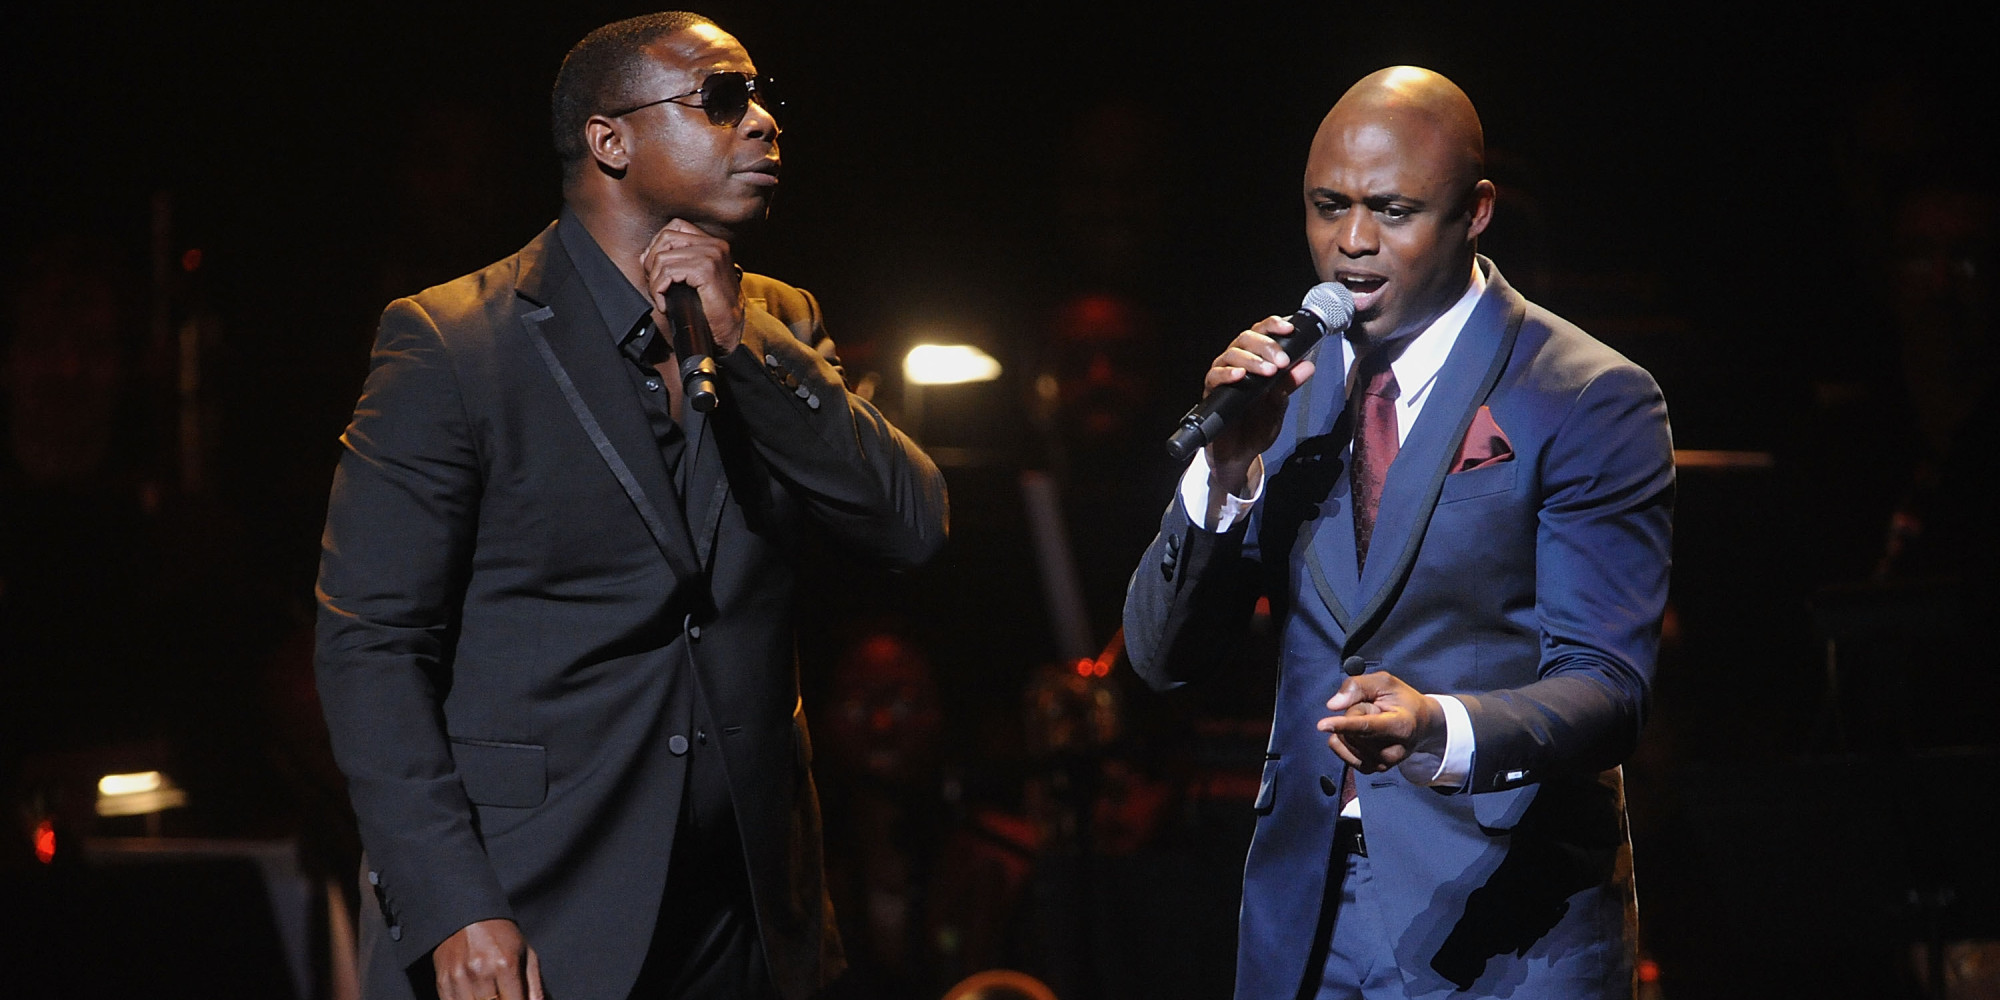 Doug E. Fresh, left and Wayne Brady attend the Apollo Theater Spring Gala and